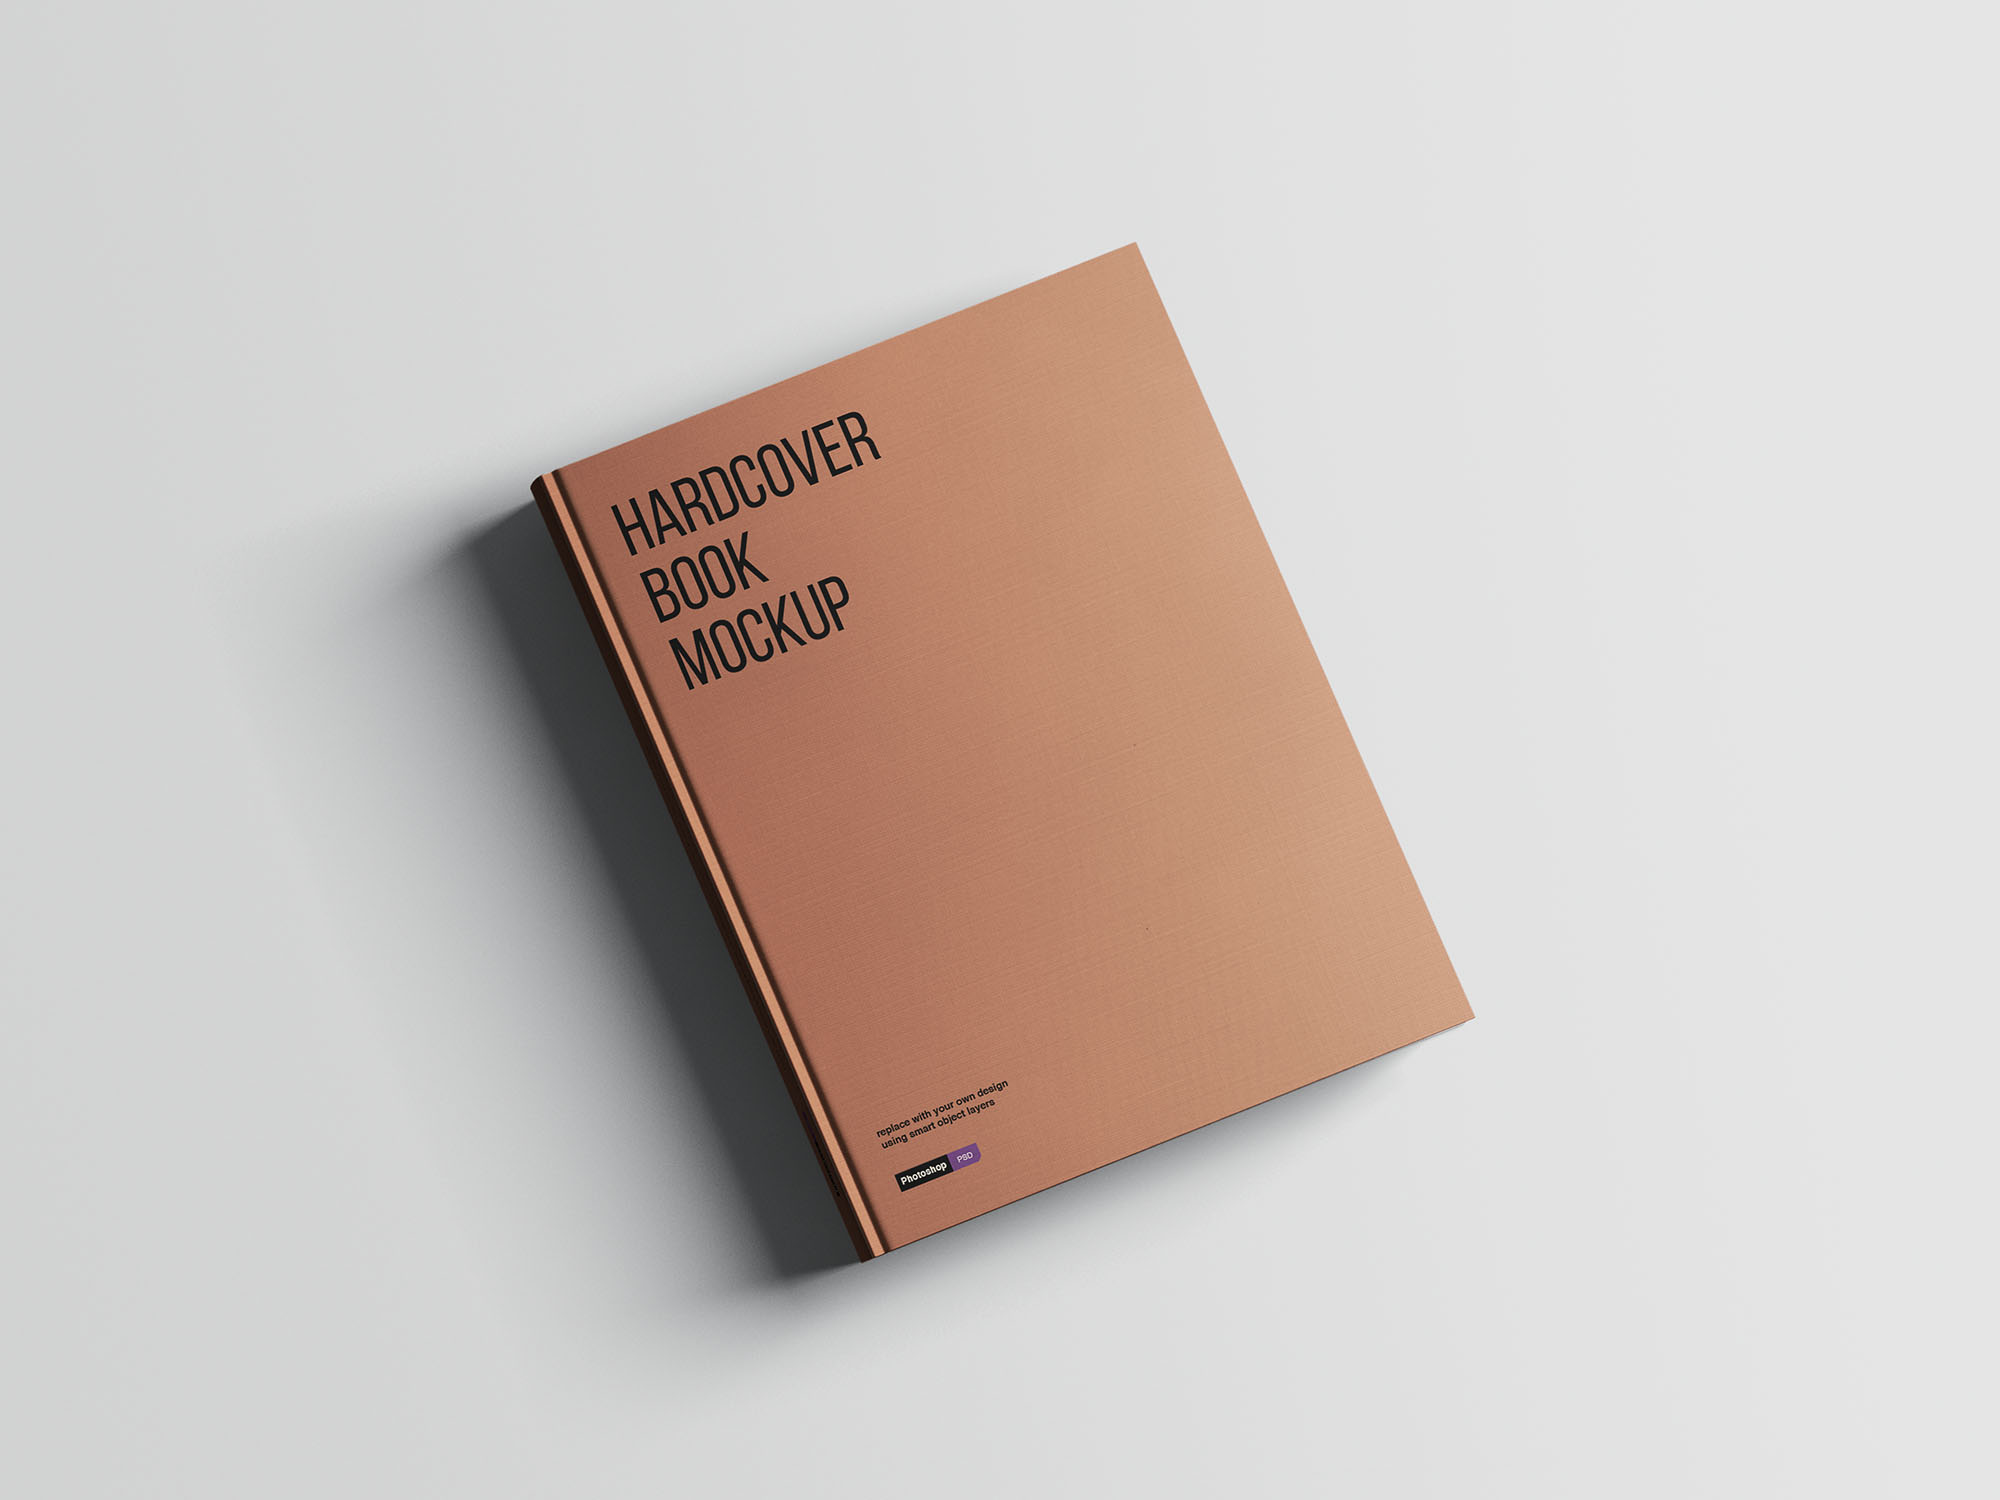 Hardcover A4 Book Mockup 02